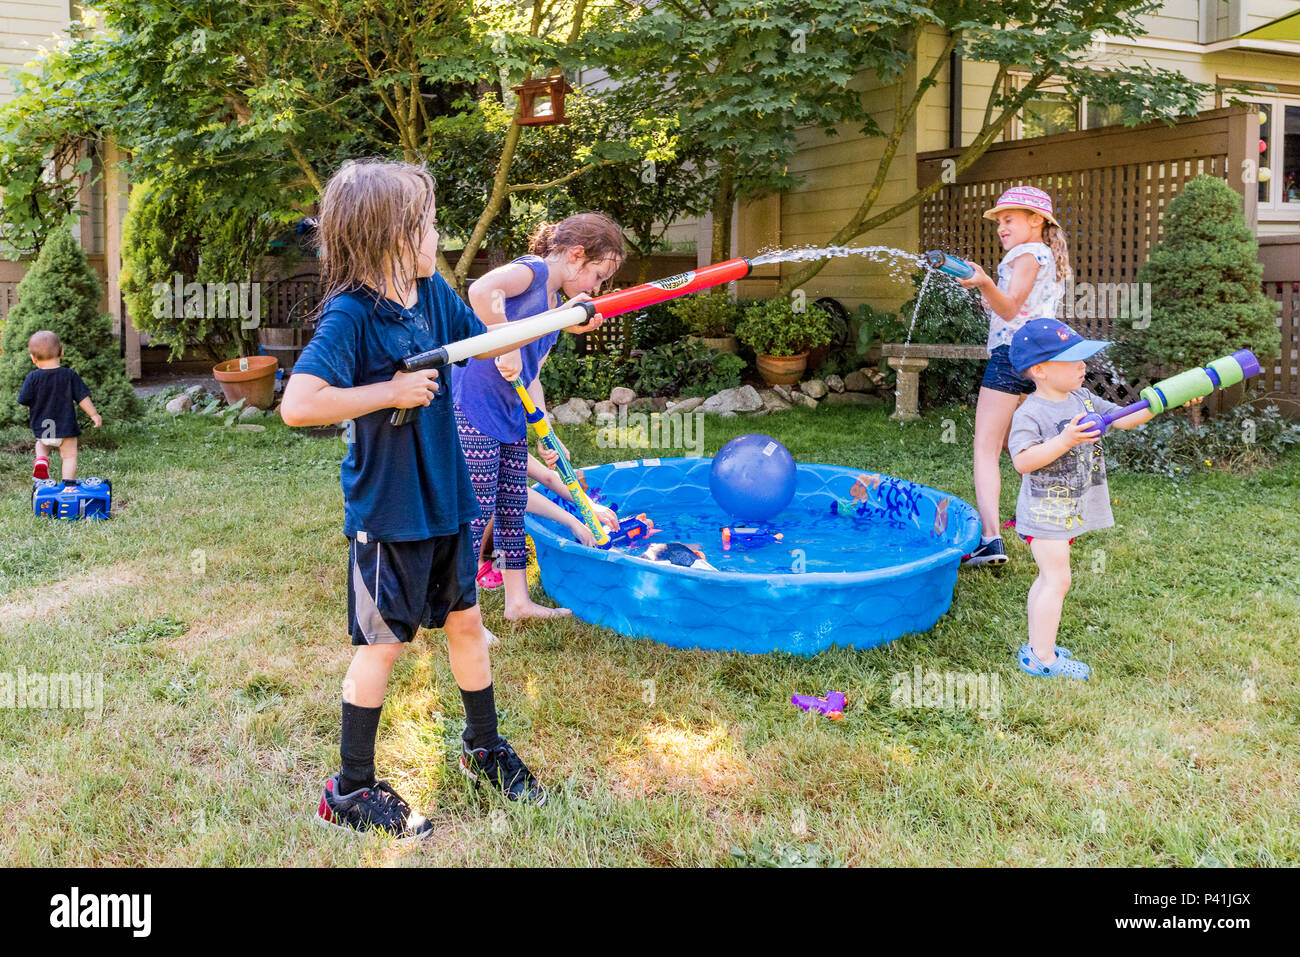 Keeping cool, summer fun,. Kids have friendly backyard water fight. - Stock Image